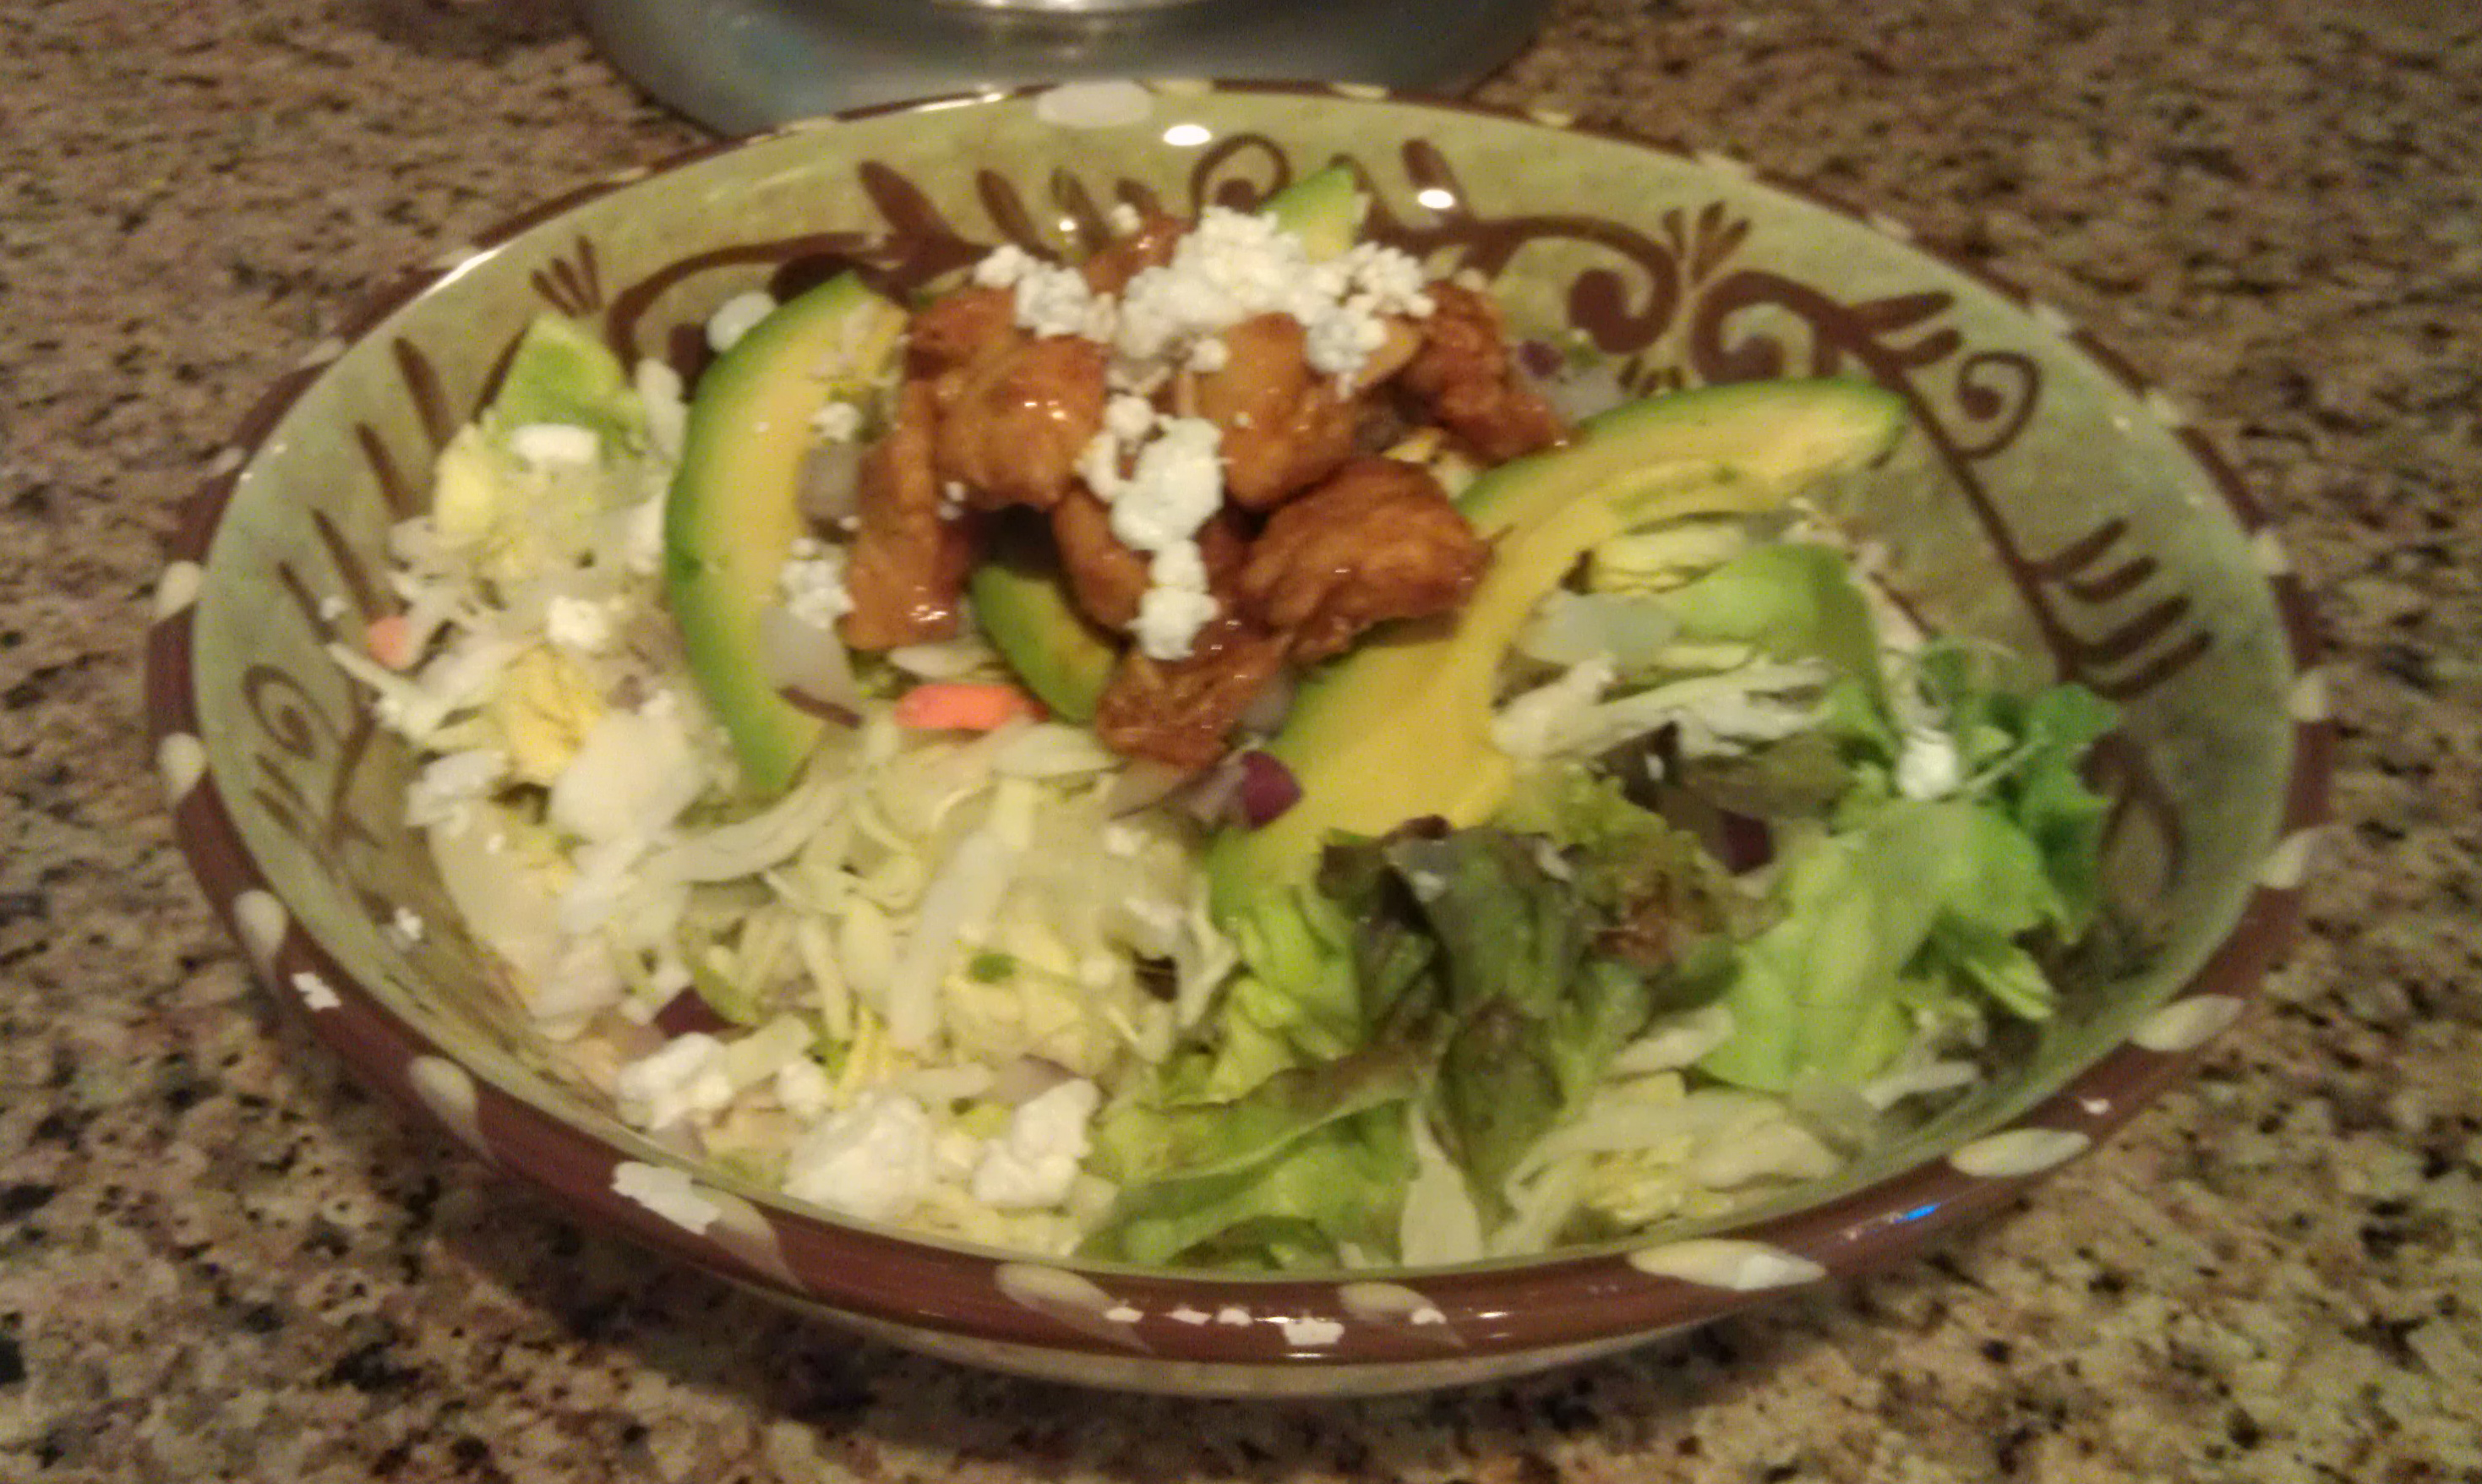 BBQ Chicken and Goat Cheese Salad